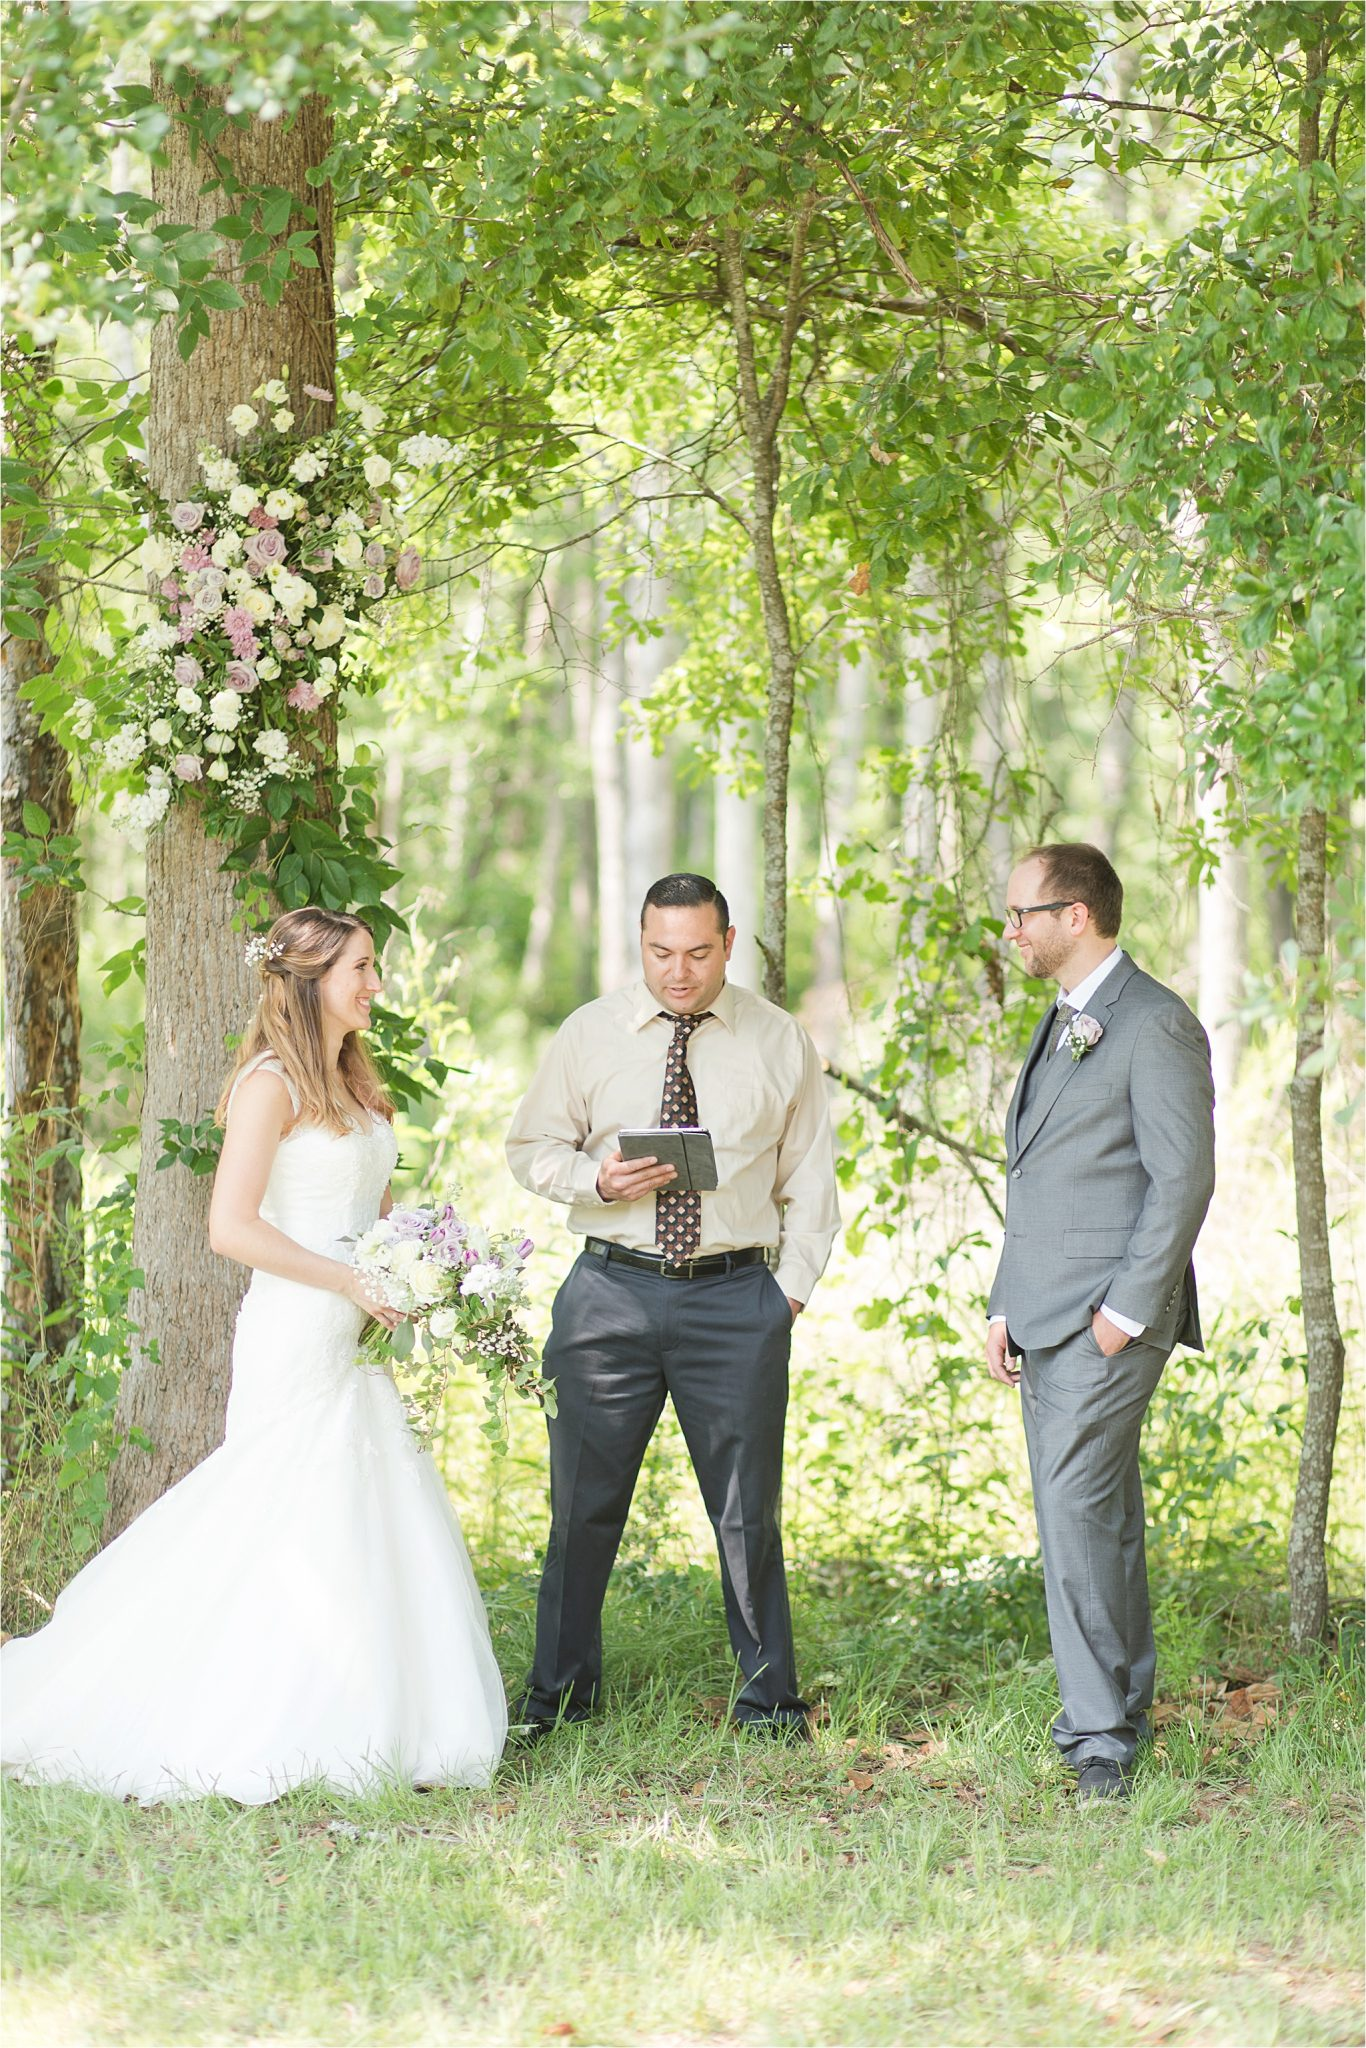 Backyard Wedding in the Country-decorate trees with flowers-woods as wedding backdrop-ceremony in front of forest-woods frame bride and groom ceremony